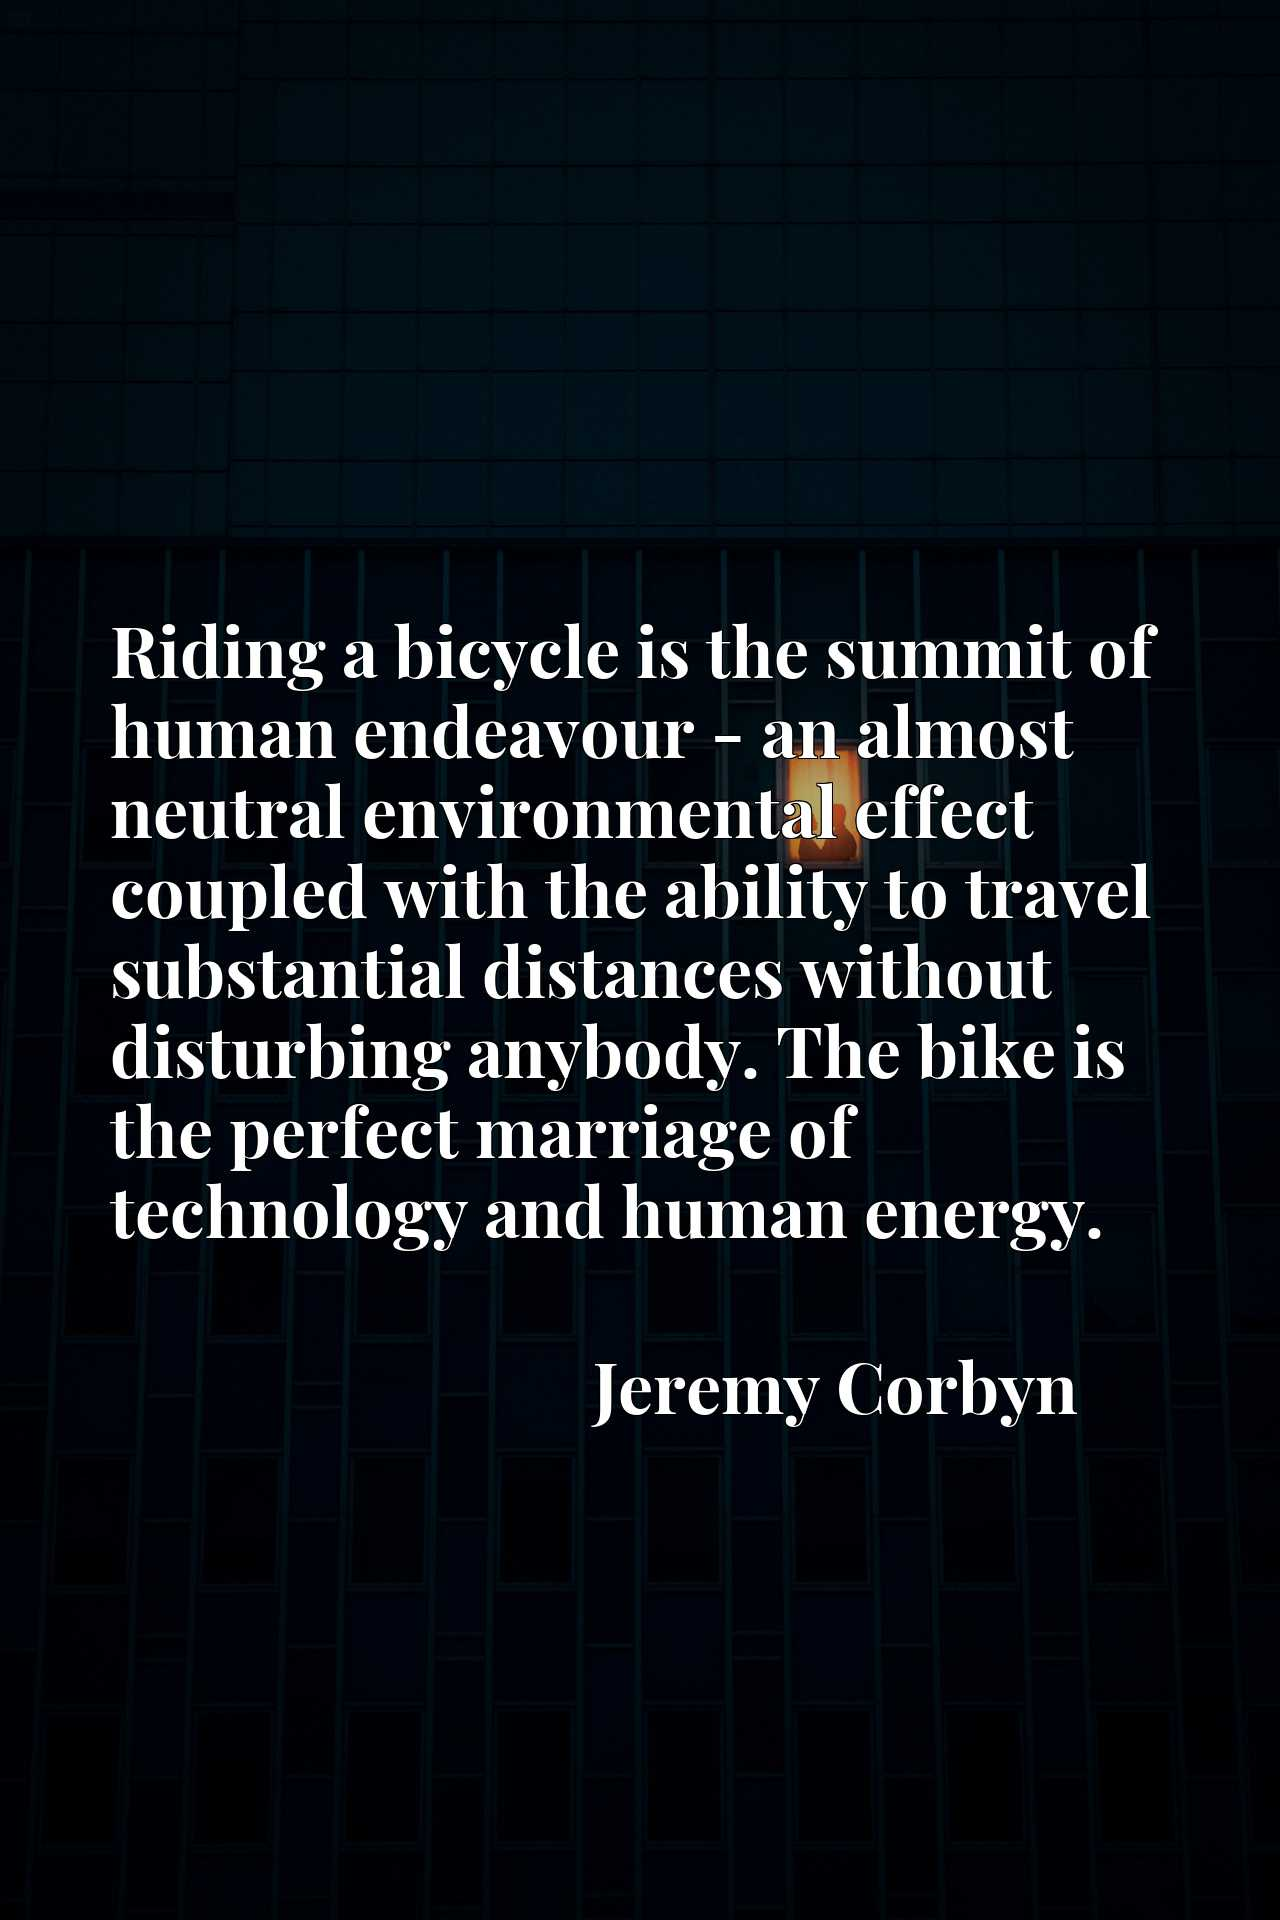 Riding a bicycle is the summit of human endeavour - an almost neutral environmental effect coupled with the ability to travel substantial distances without disturbing anybody. The bike is the perfect marriage of technology and human energy.